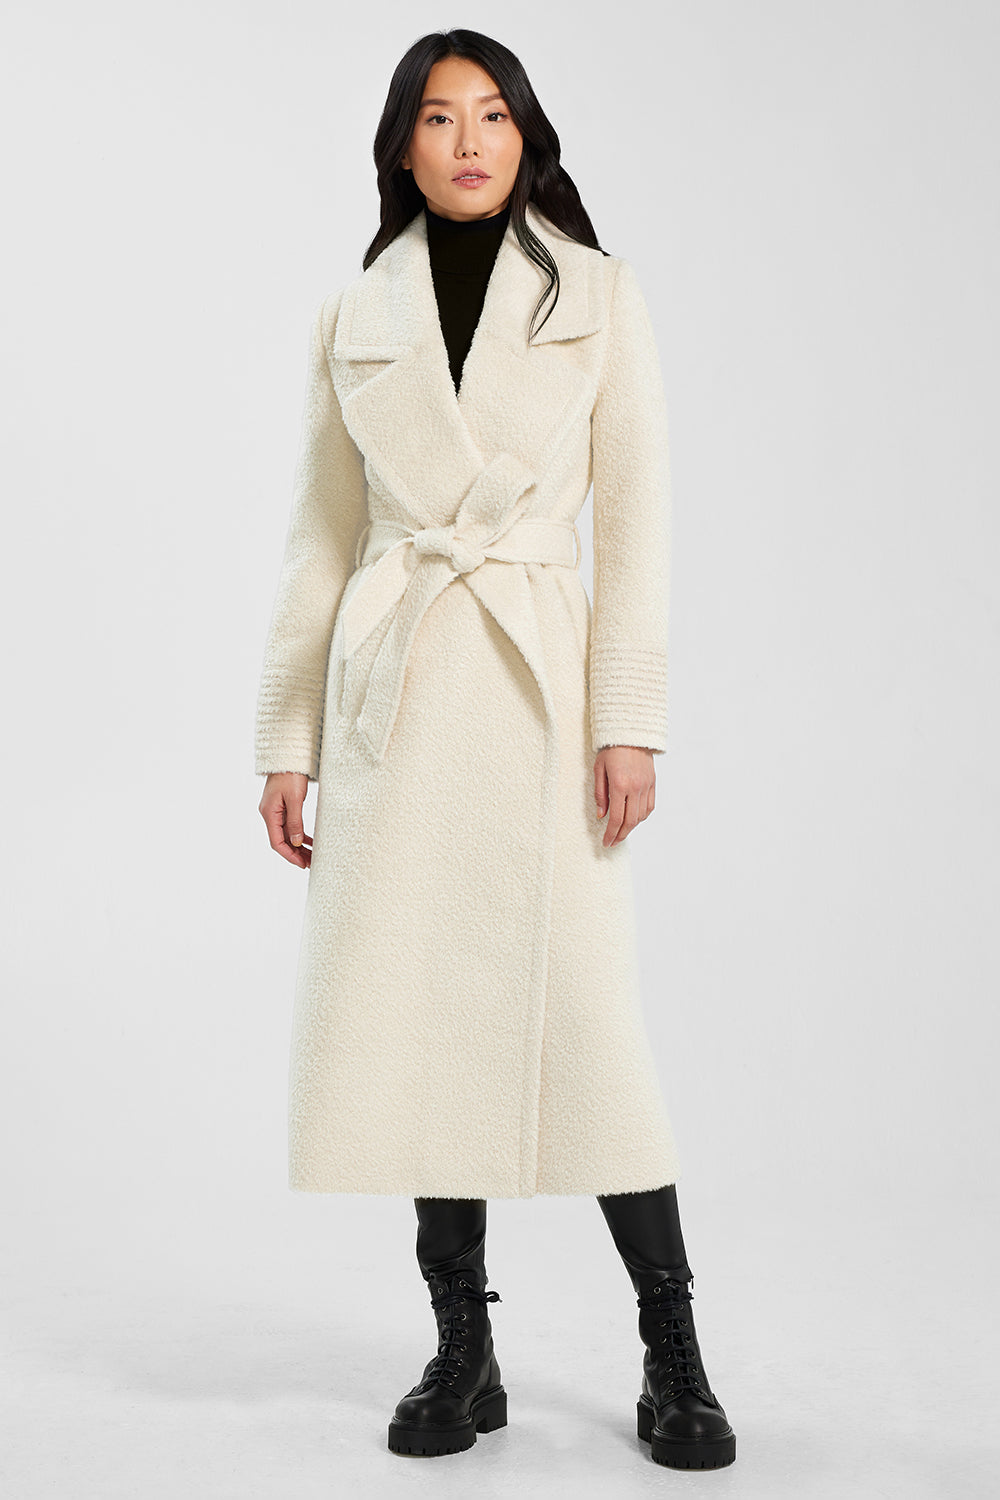 Sentaler Bouclé Alpaca Long Notched Collar Wrap Coat featured in Bouclé Alpaca and available in Ivory. Seen from front.